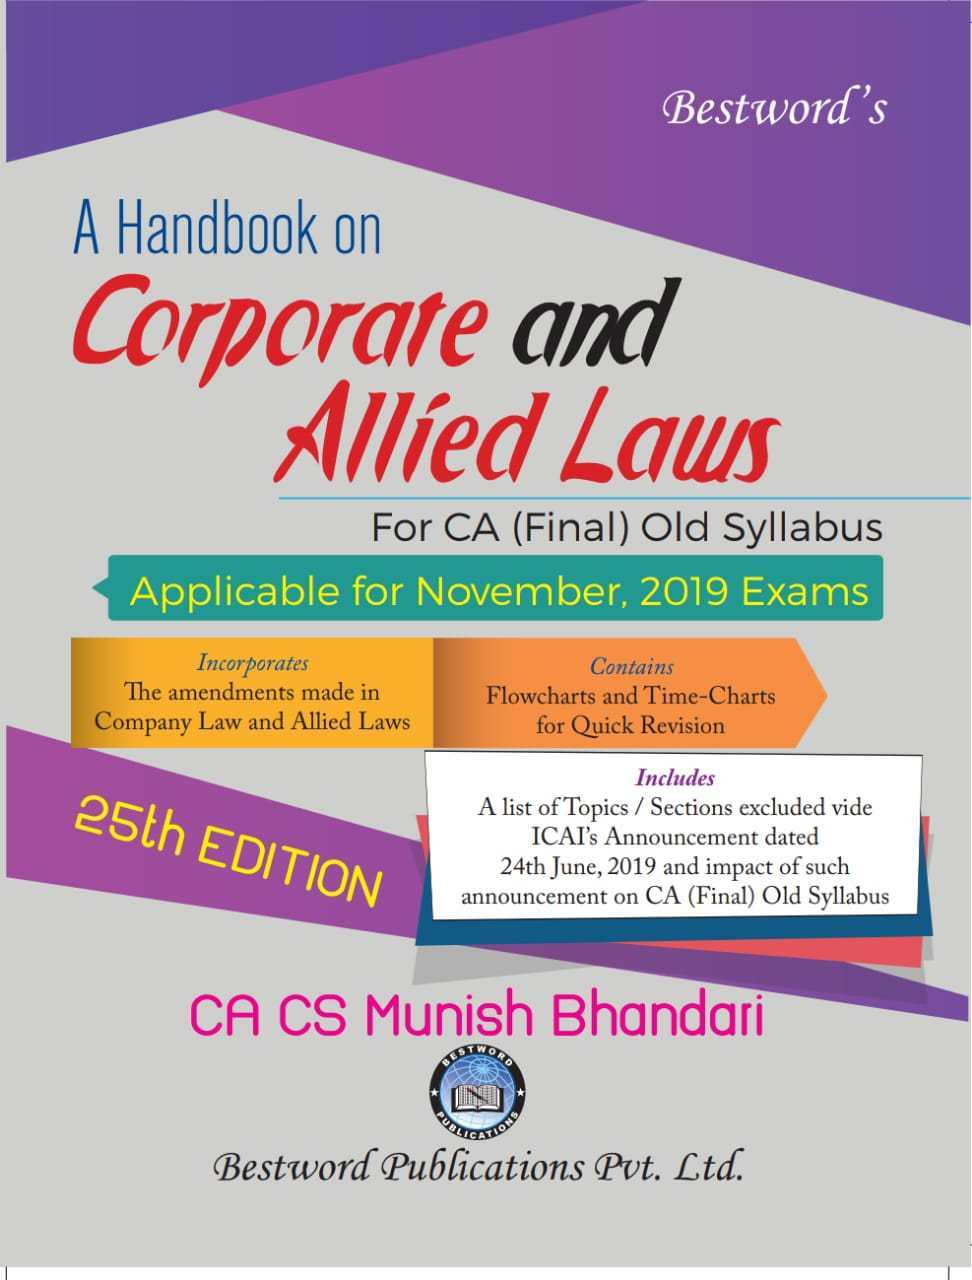 Bestword's A hand book on Corporate & Allied Laws for CA Final for Nov 2019 exam by CA Munish Bhandari (Bestword's Publishing)